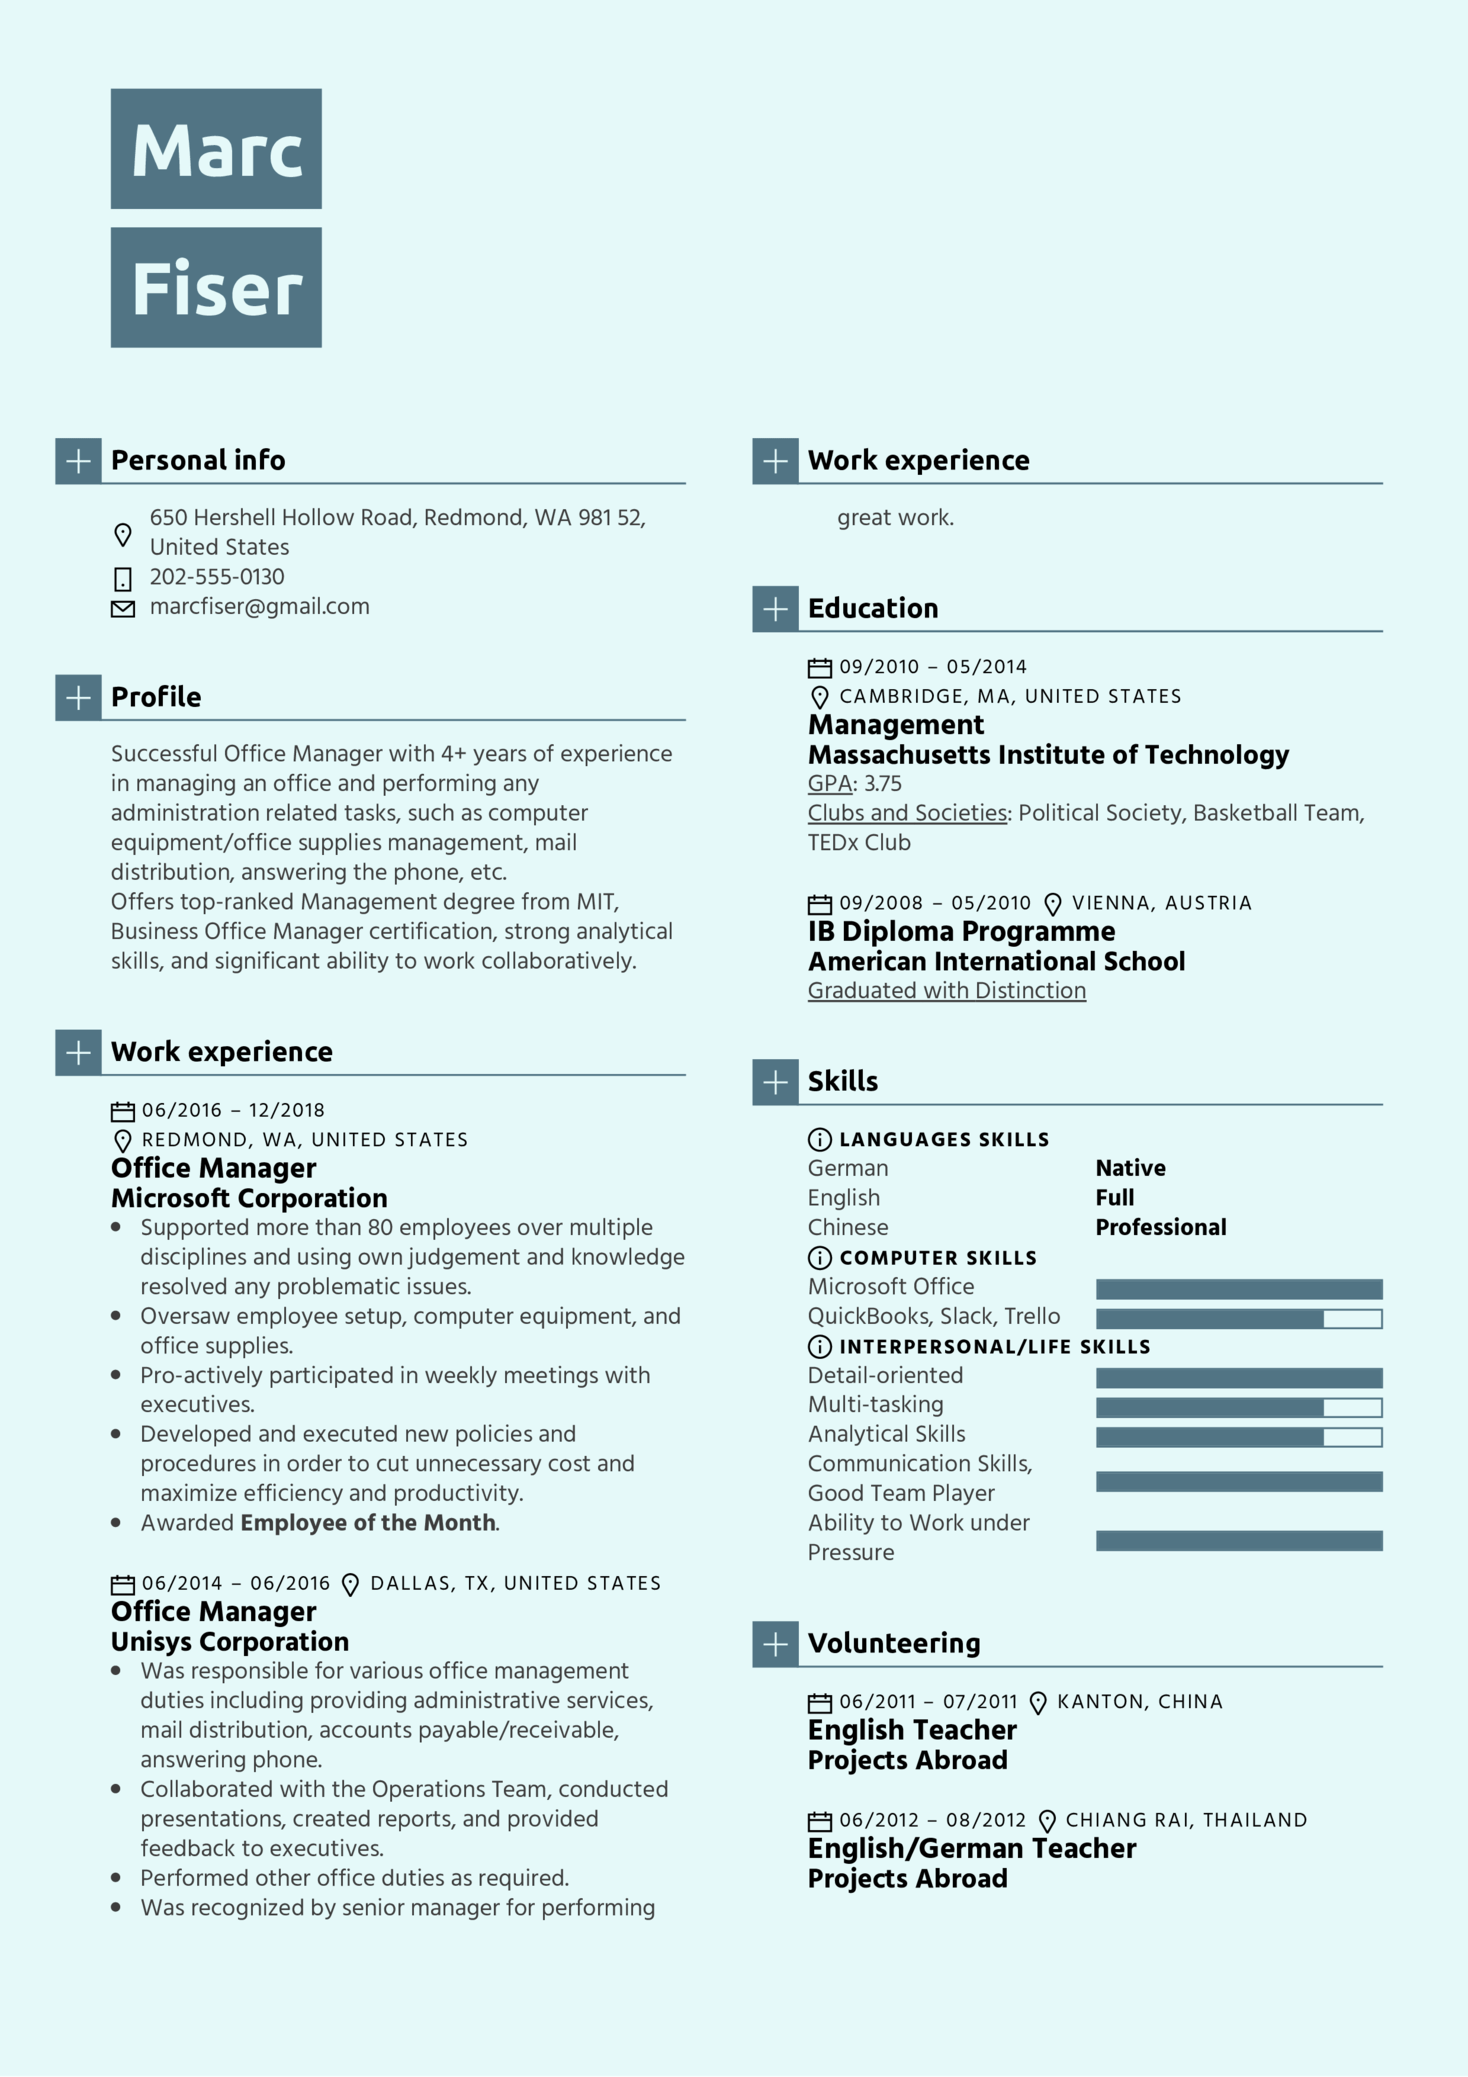 Office Manager Resume Template (Part 1)